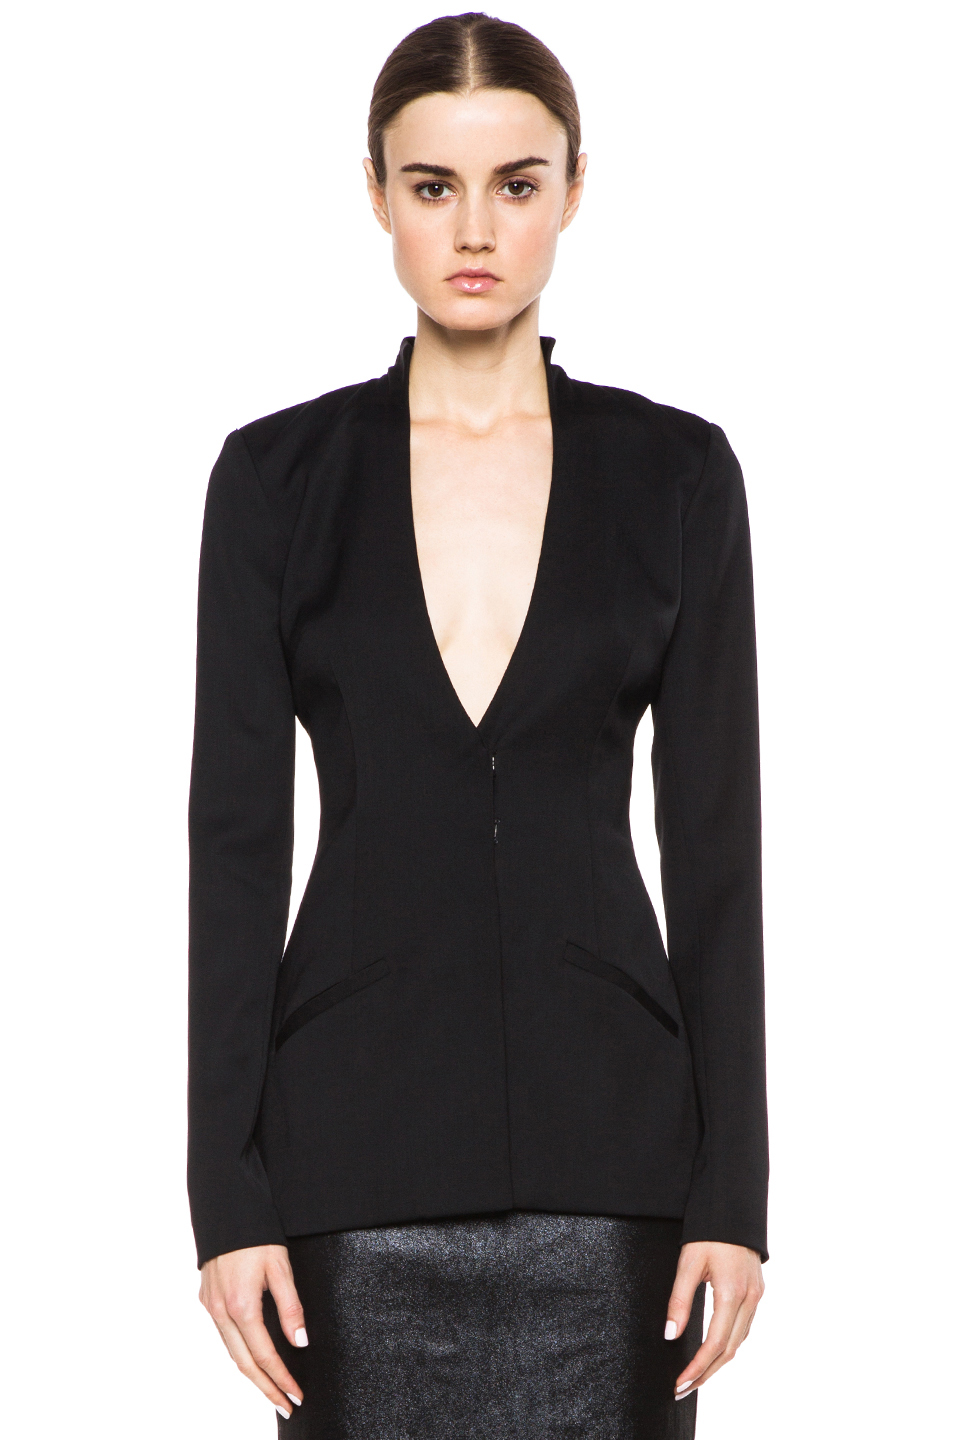 Cushnie et Ochs|Suiting Poly-Blend Blazer in Black